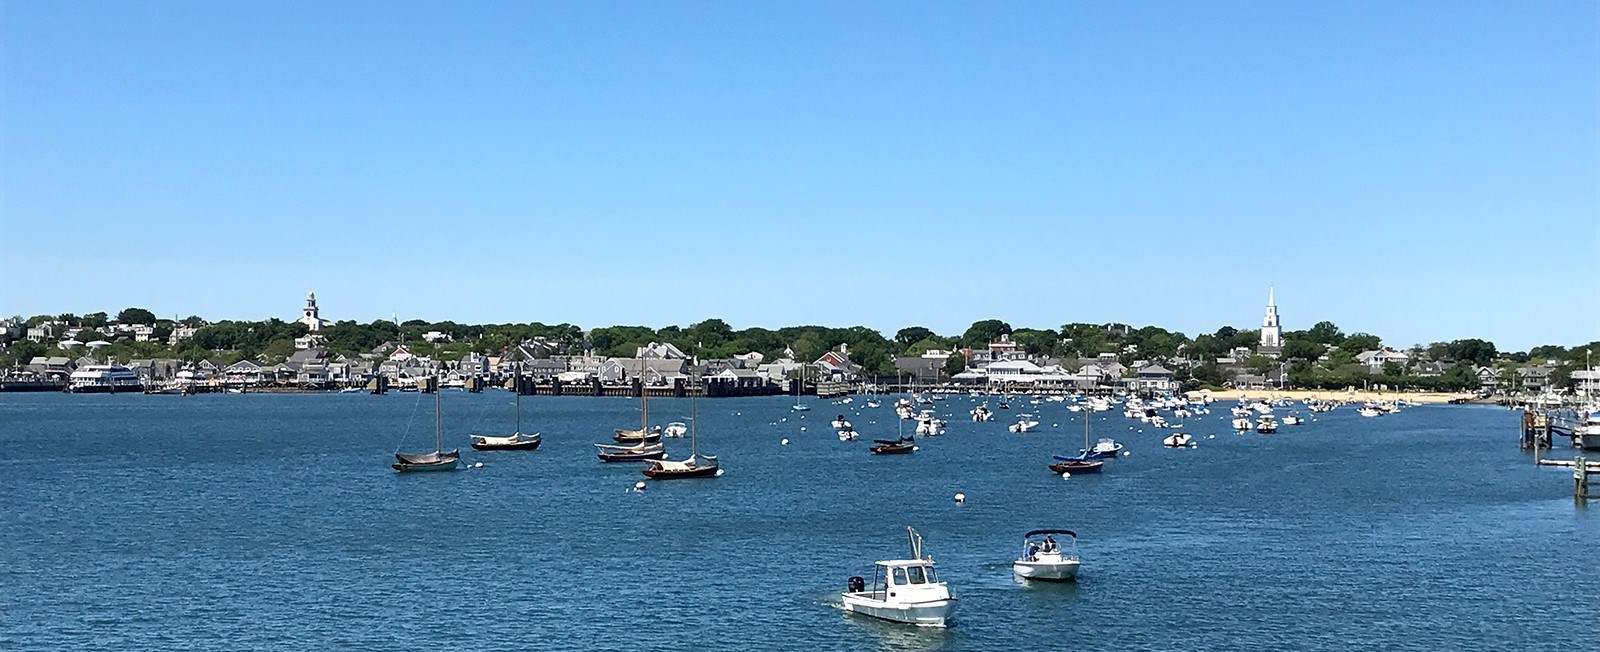 If you were given 8 hours on Nantucket, where would you go? Check out our very busy, sun-filled, interesting Nantucket day. We met many of our homeowners and toured around downtown.